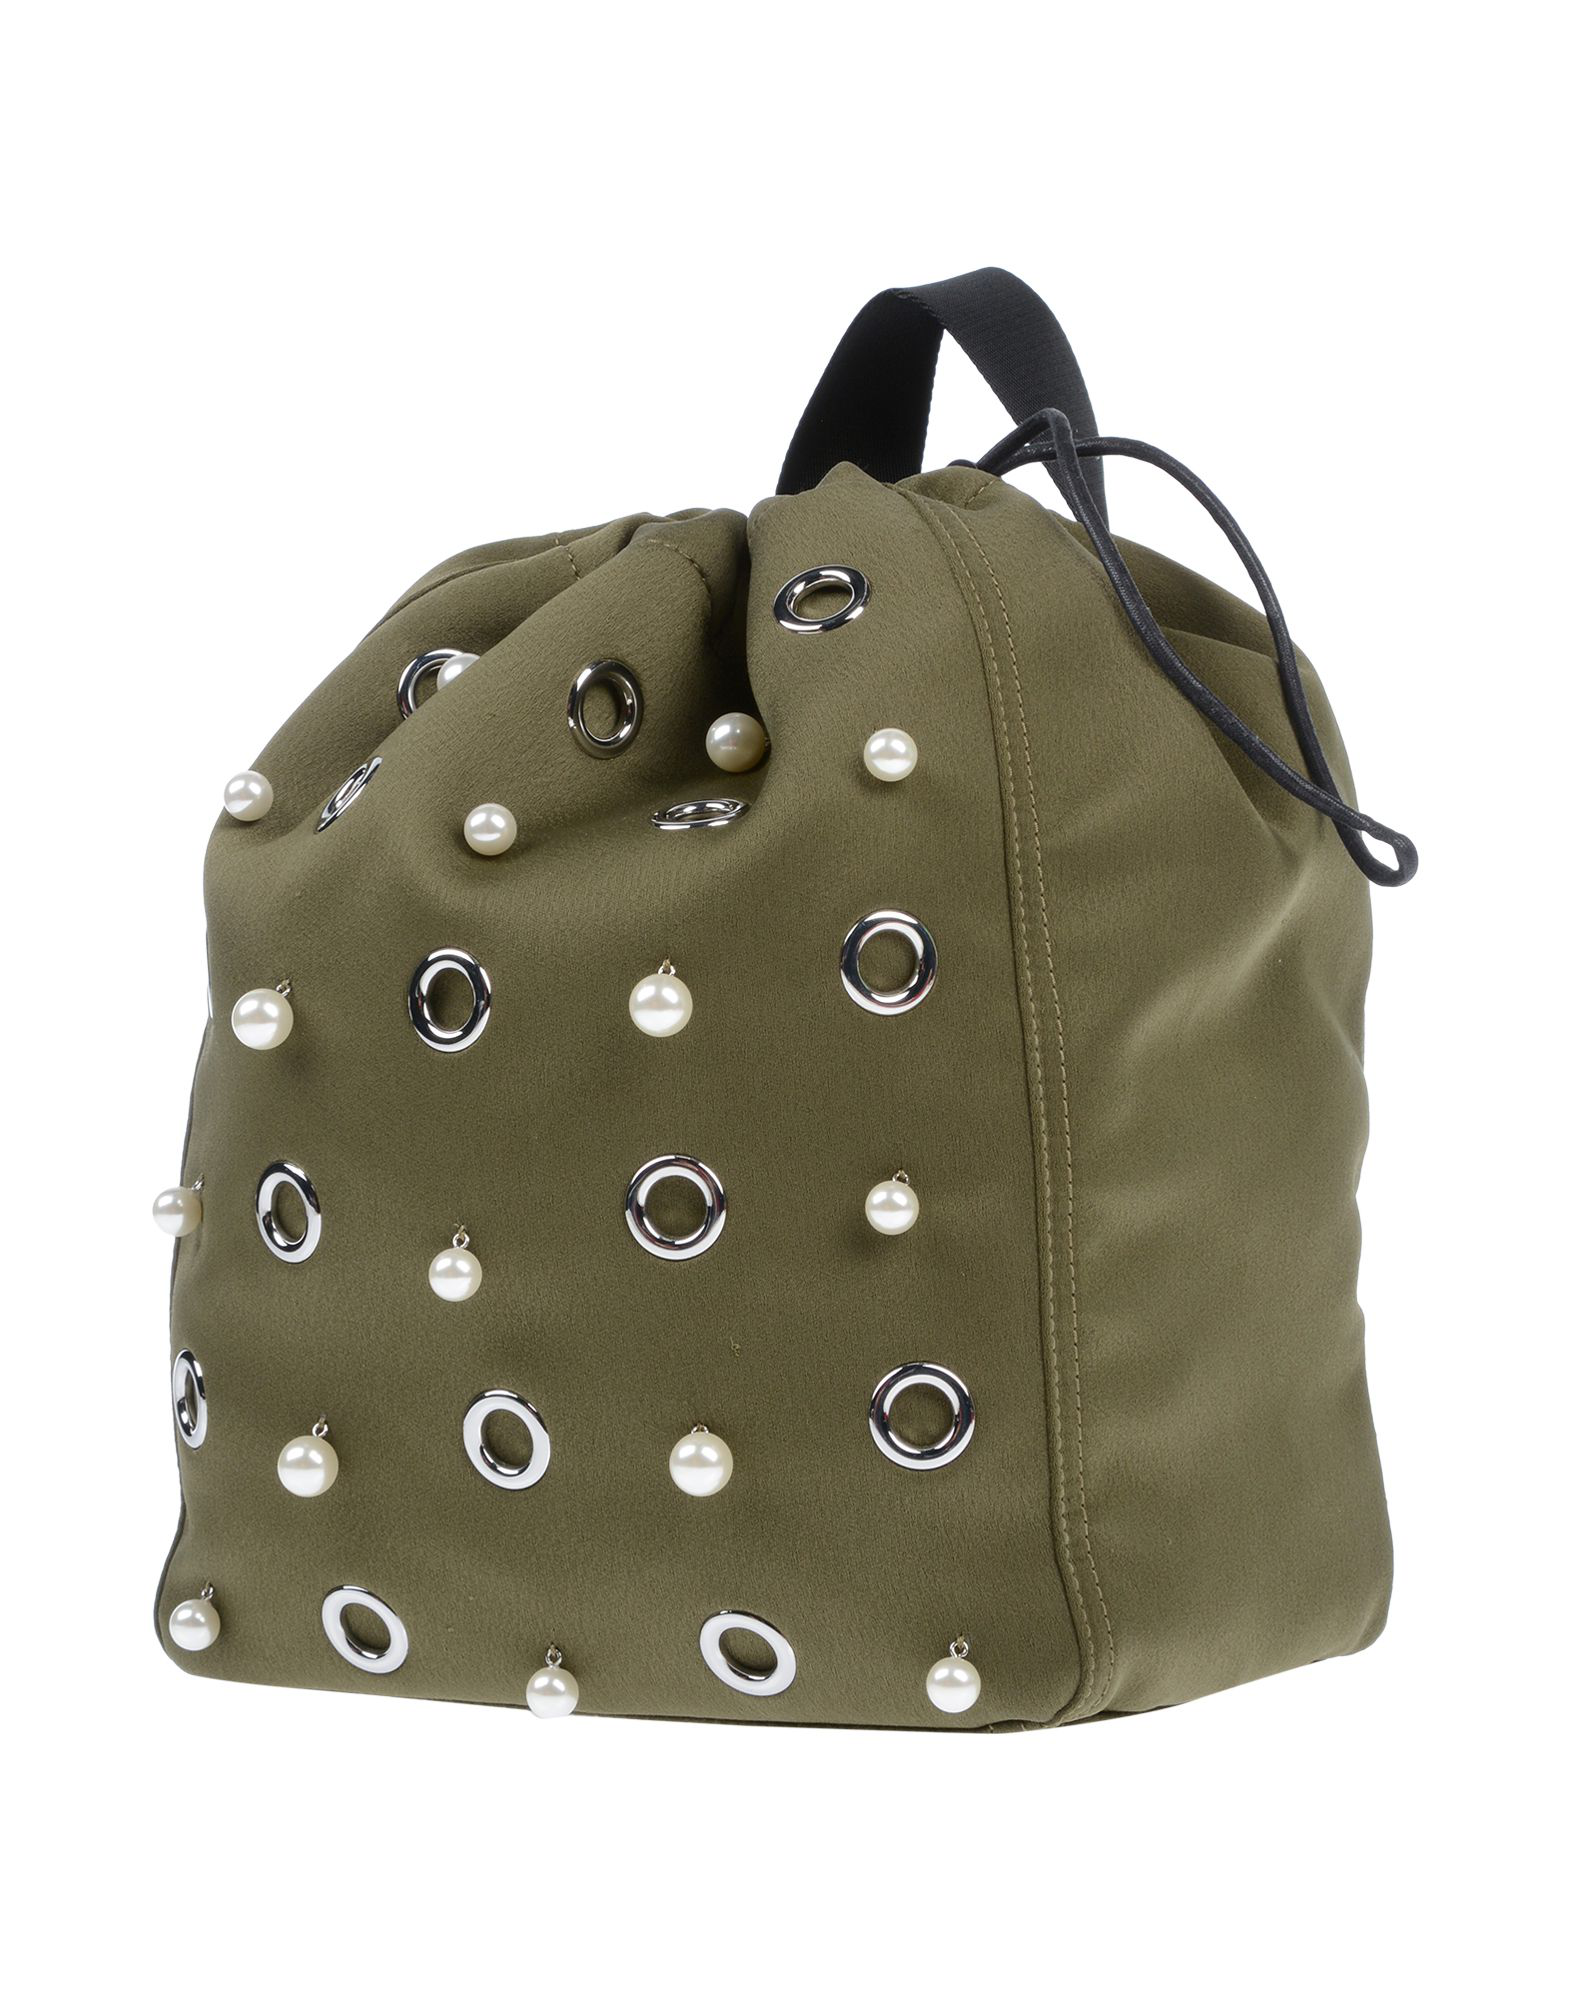 3.1 Phillip Lim Backpacks   Fanny Packs In Military Green  bfcf968d4